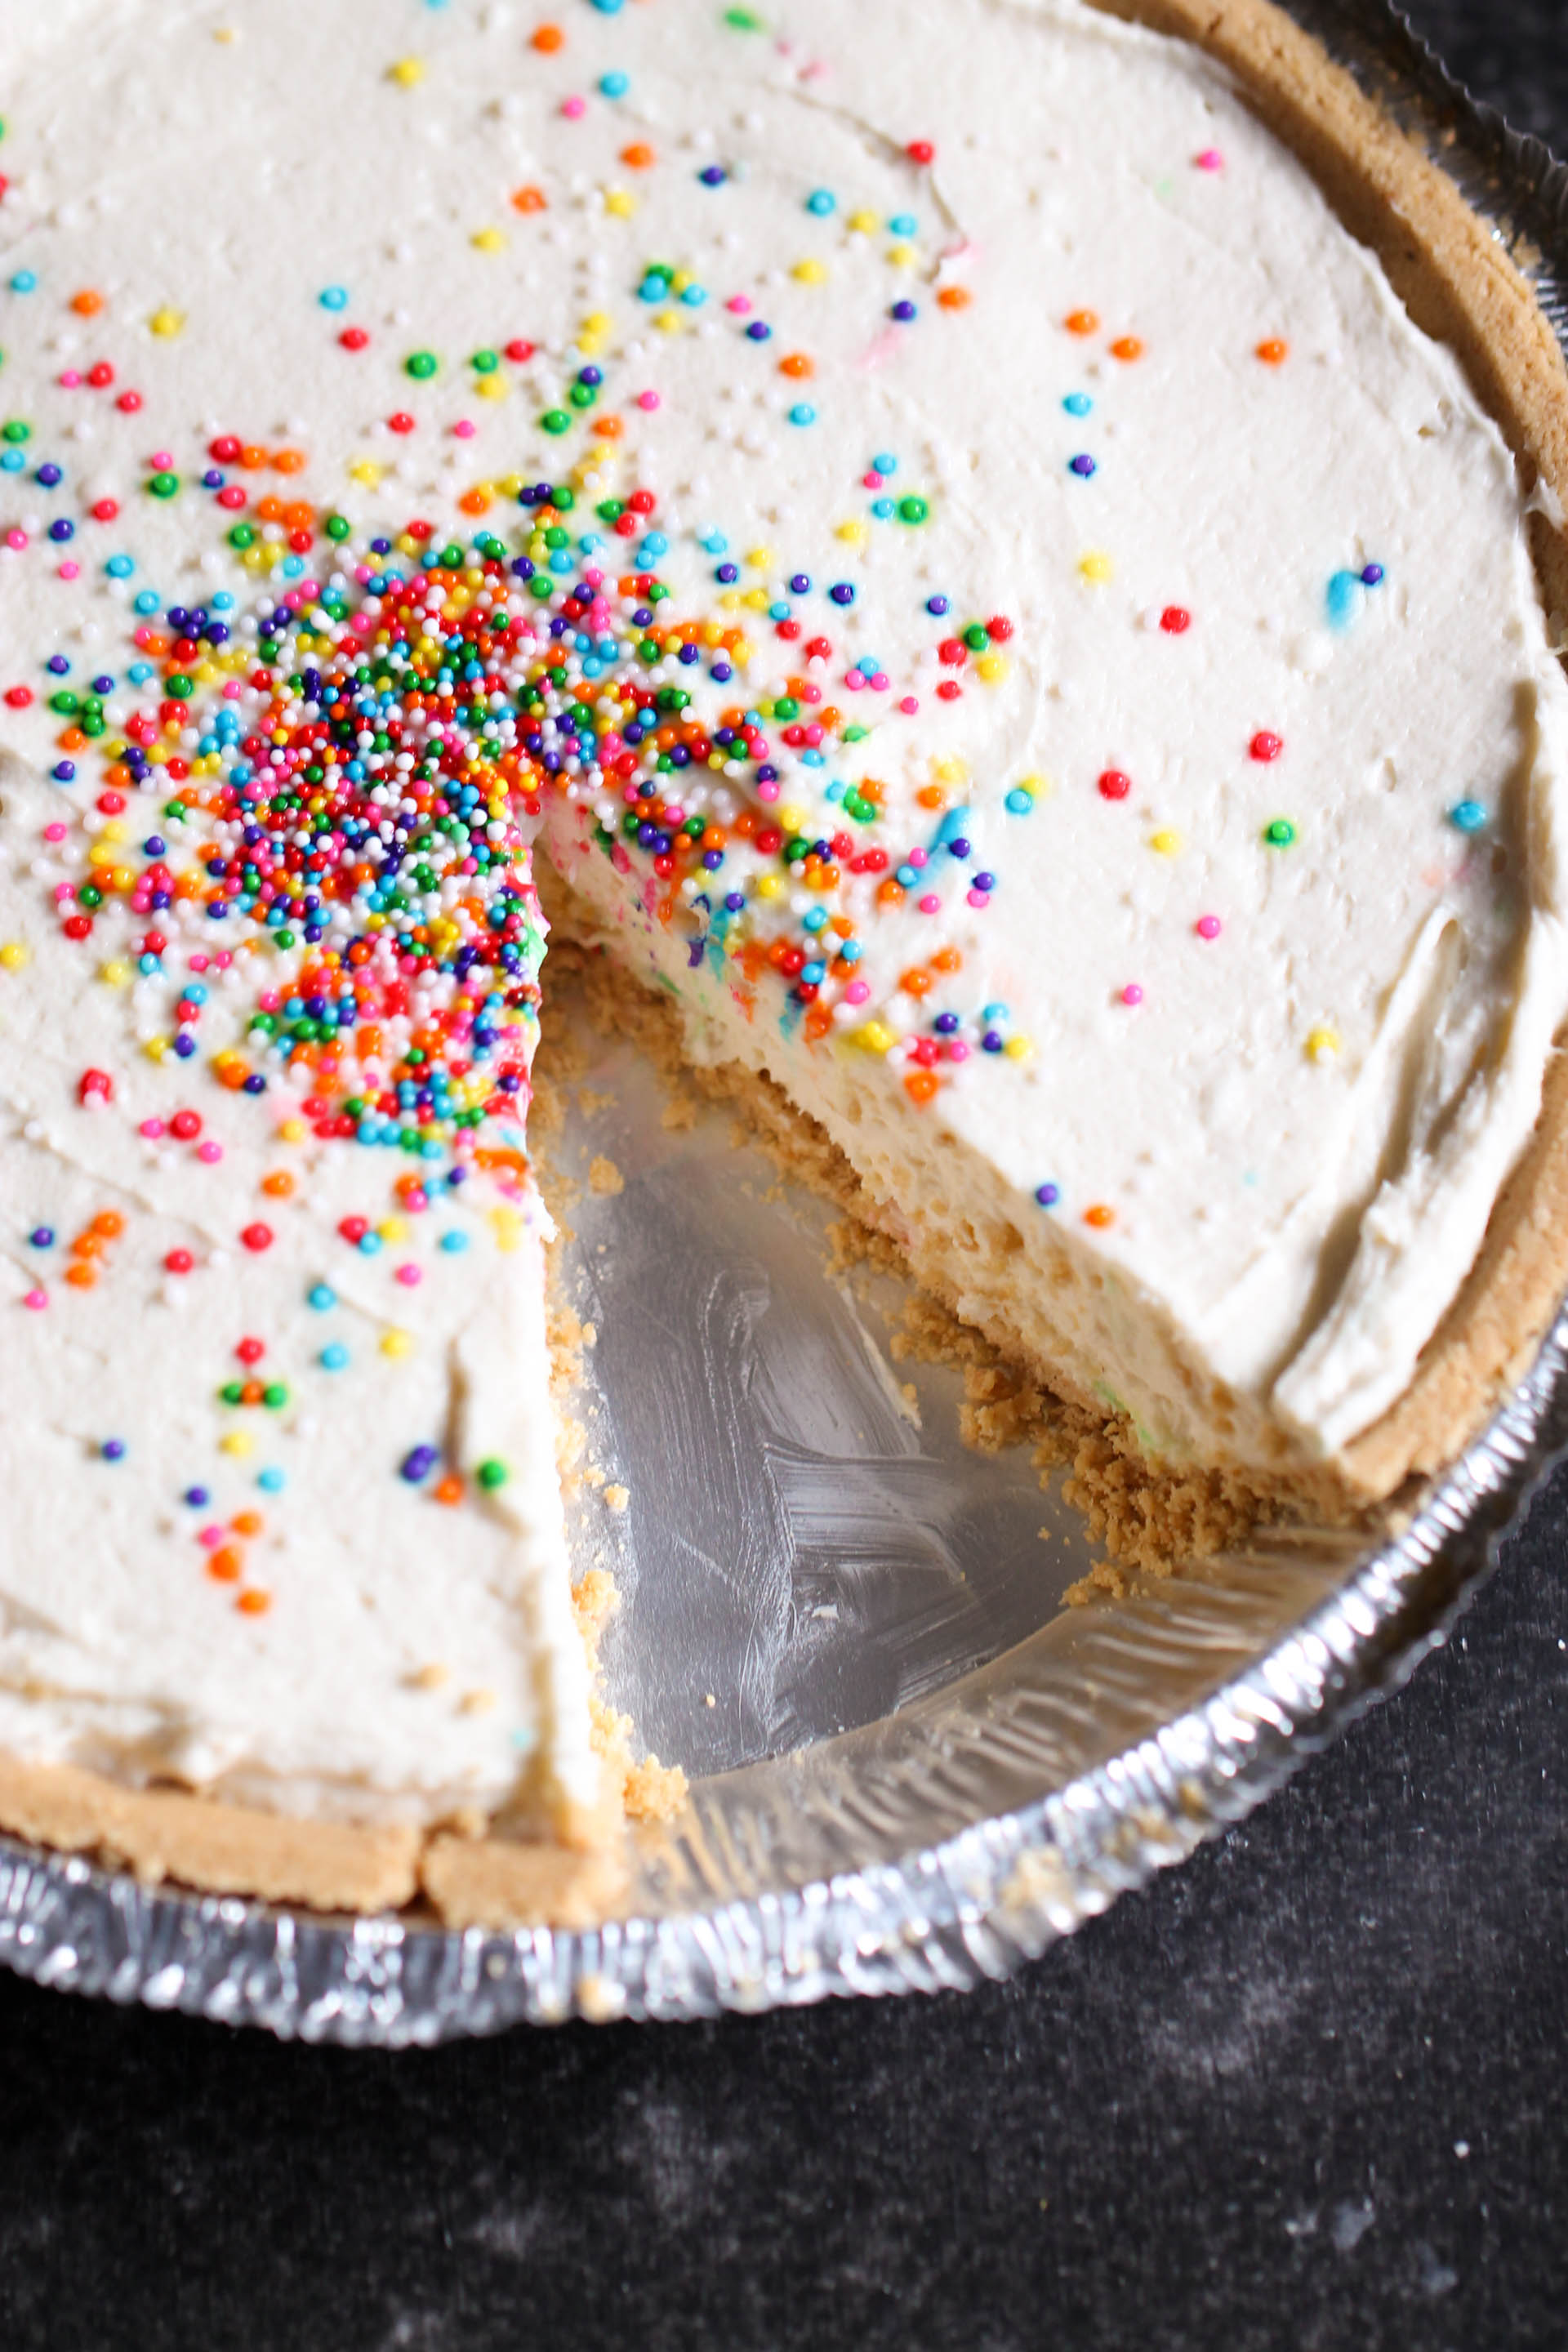 5-Ingredient Cake Batter Cheesecake with sprinkles missing a piece